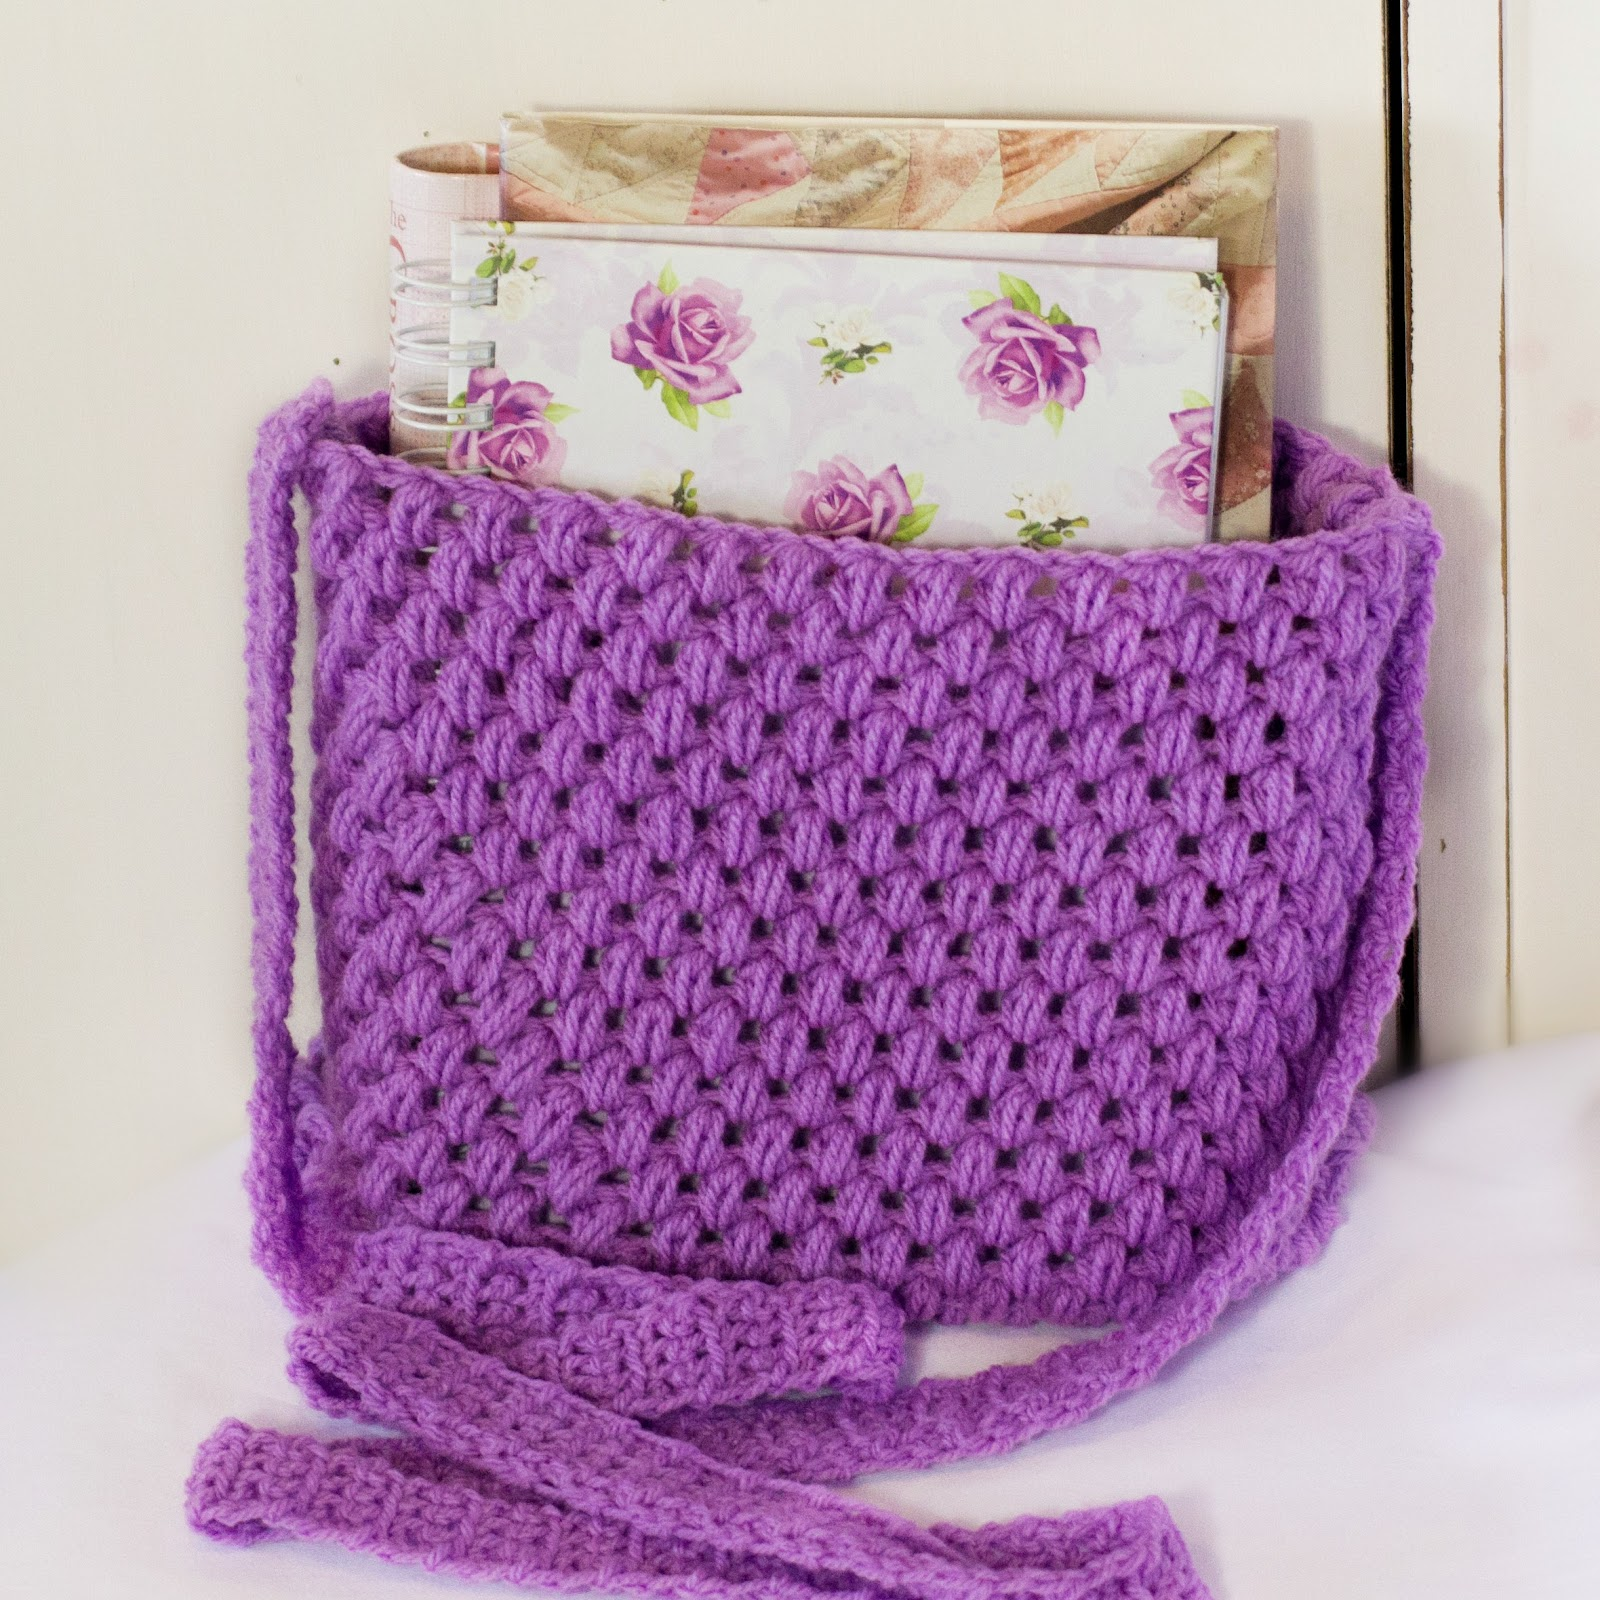 Easy Crochet Tote Bag Pattern : ... Craft, Crochet, Create: Out and About ~ Easy Tote Bag Crochet Pattern